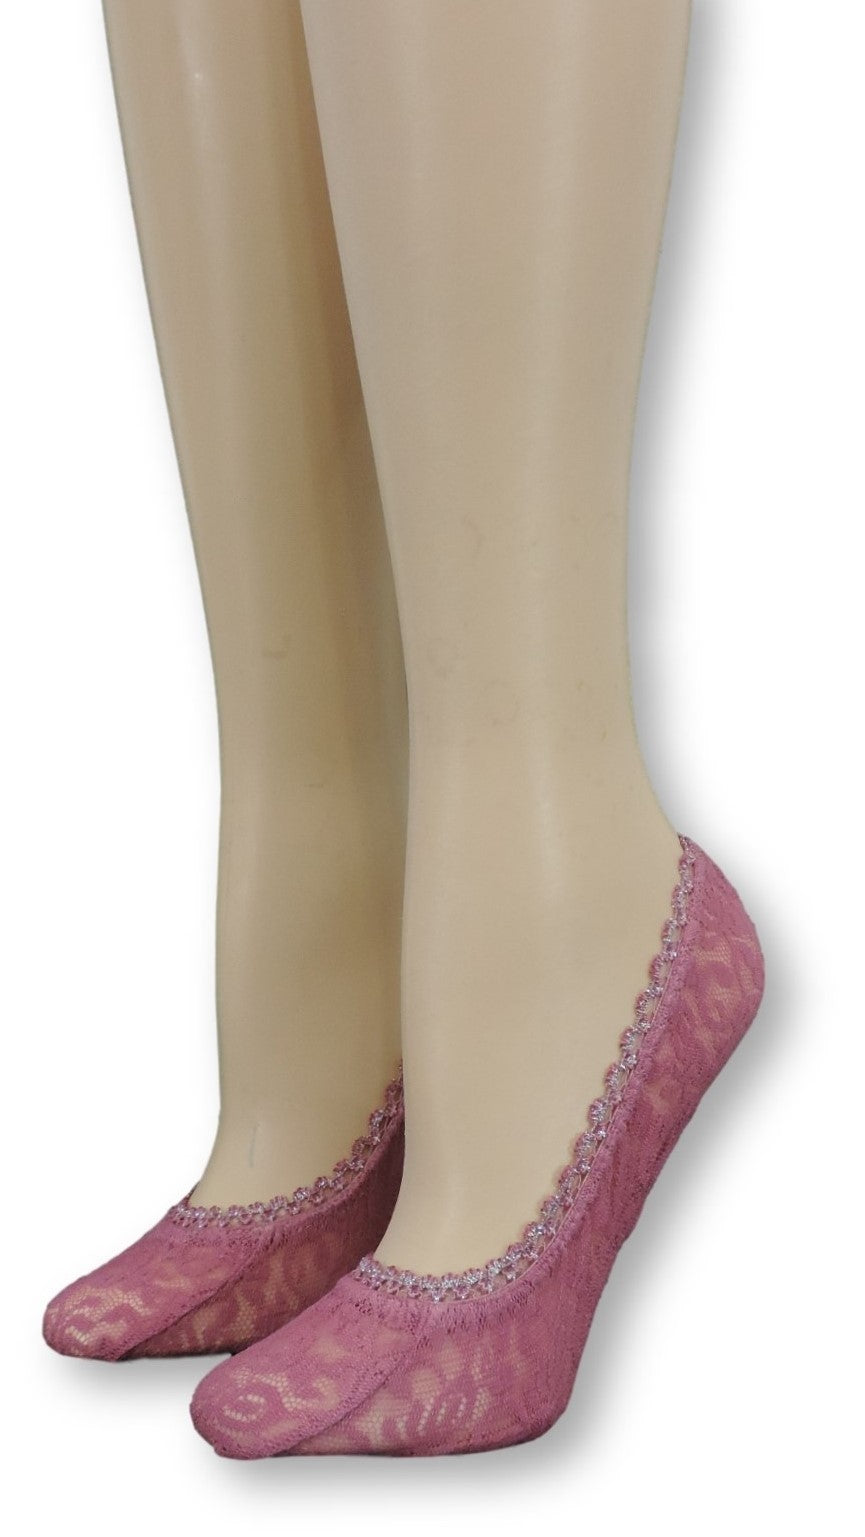 Magenta Ankle Mesh Socks with Glitter Lace - Global Trendz Fashion®